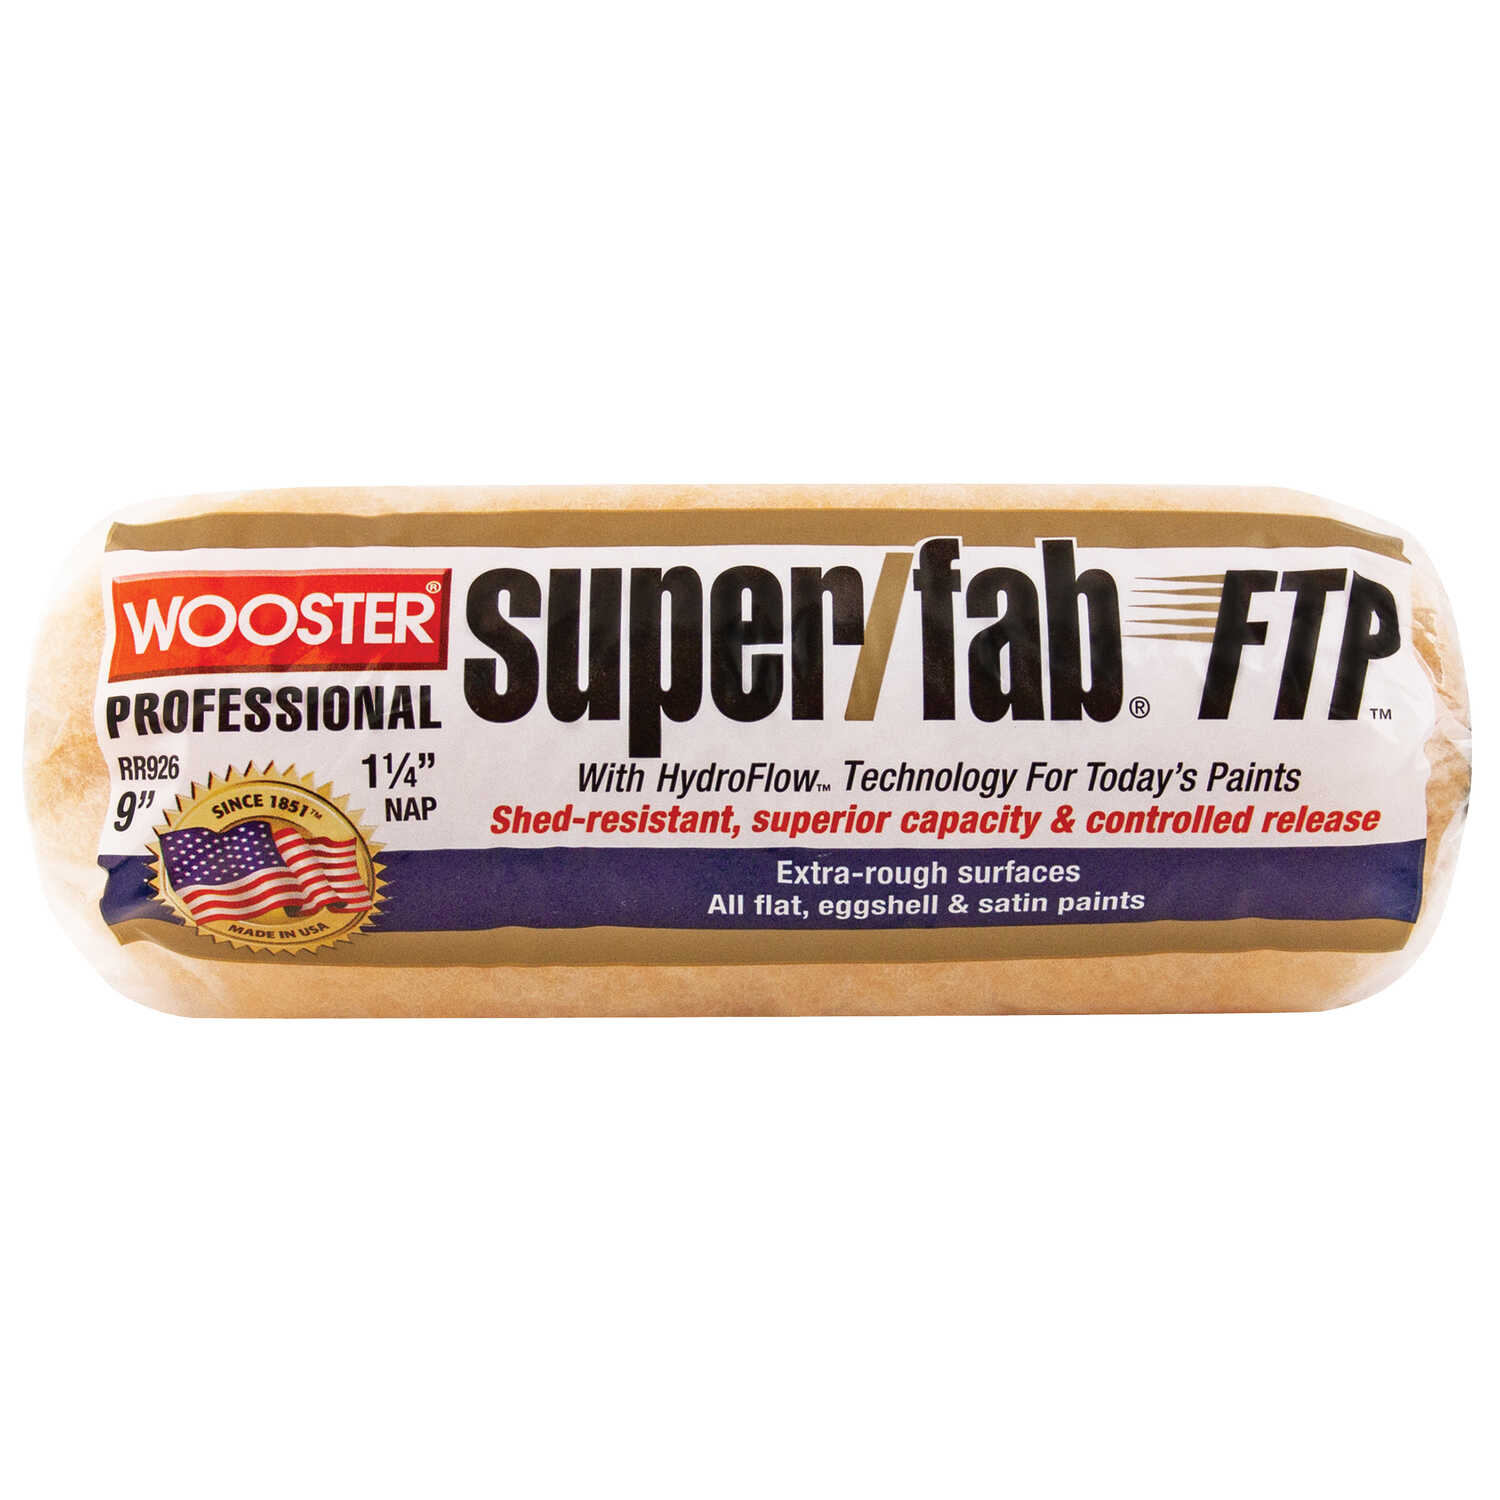 Wooster  Super/Fab FTP  Synthetic Blend  1-1/4 in.  x 9 in. W Paint Roller Cover  For Extra Rough Su